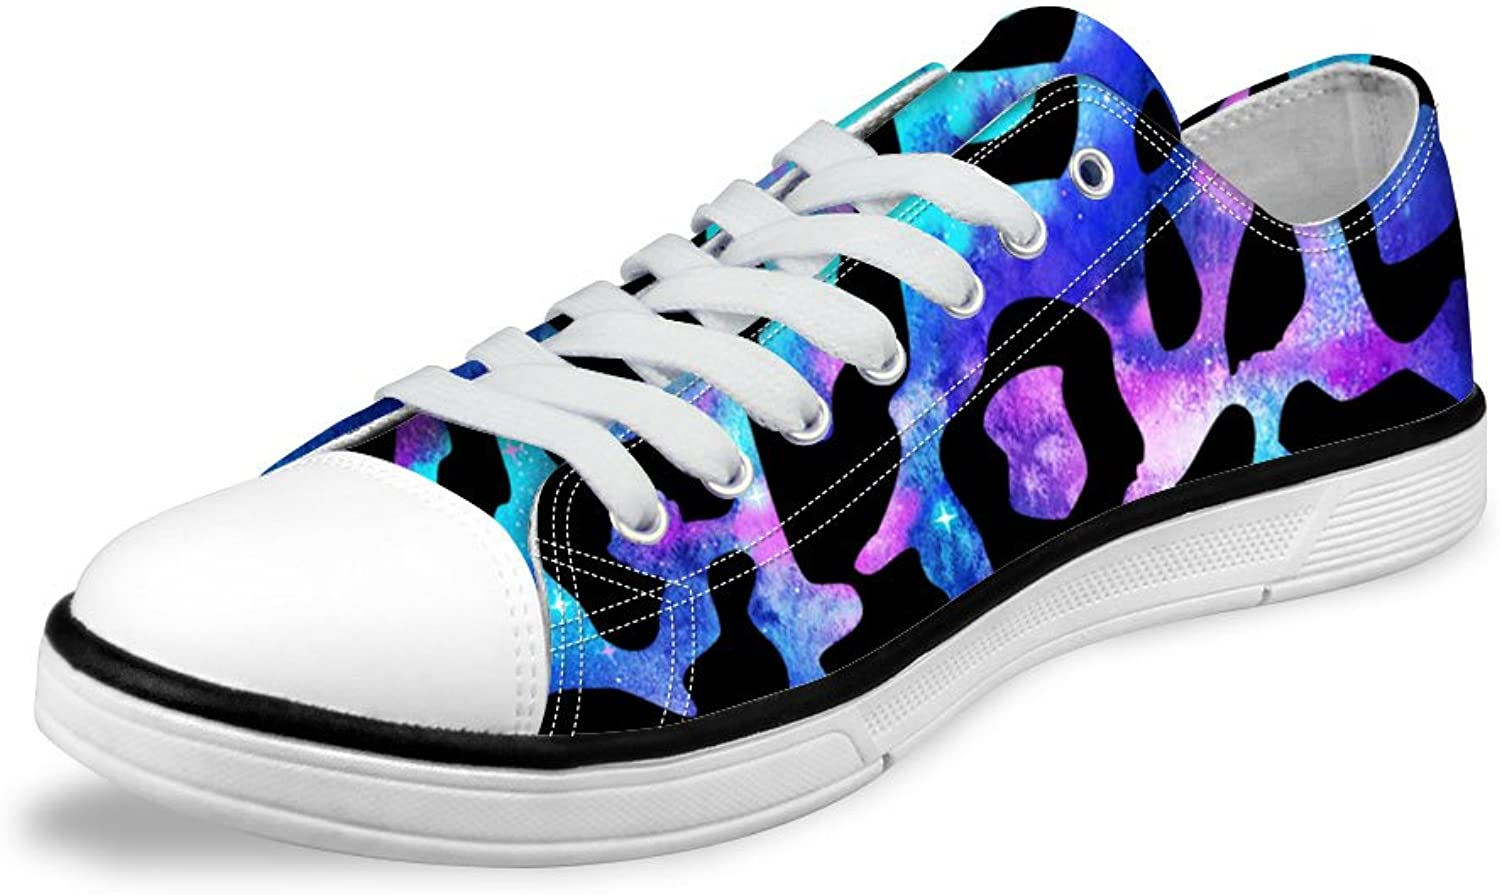 Micandle Fashion Print Canvas Low Top shoes Summer Sneakers for Women